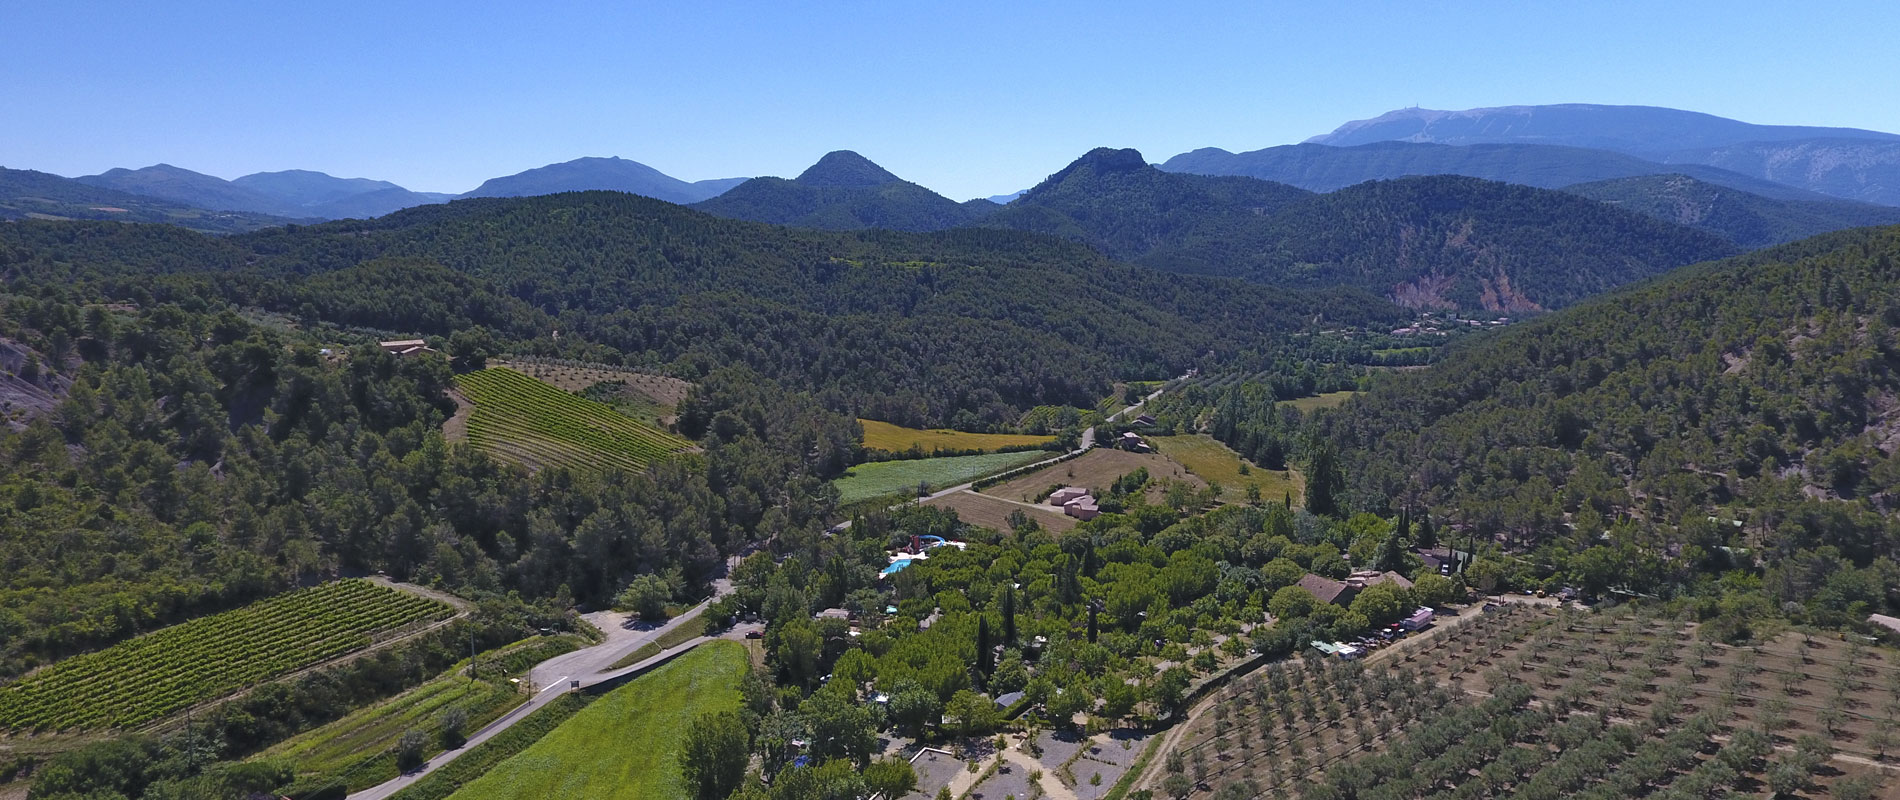 location buis les baronnies